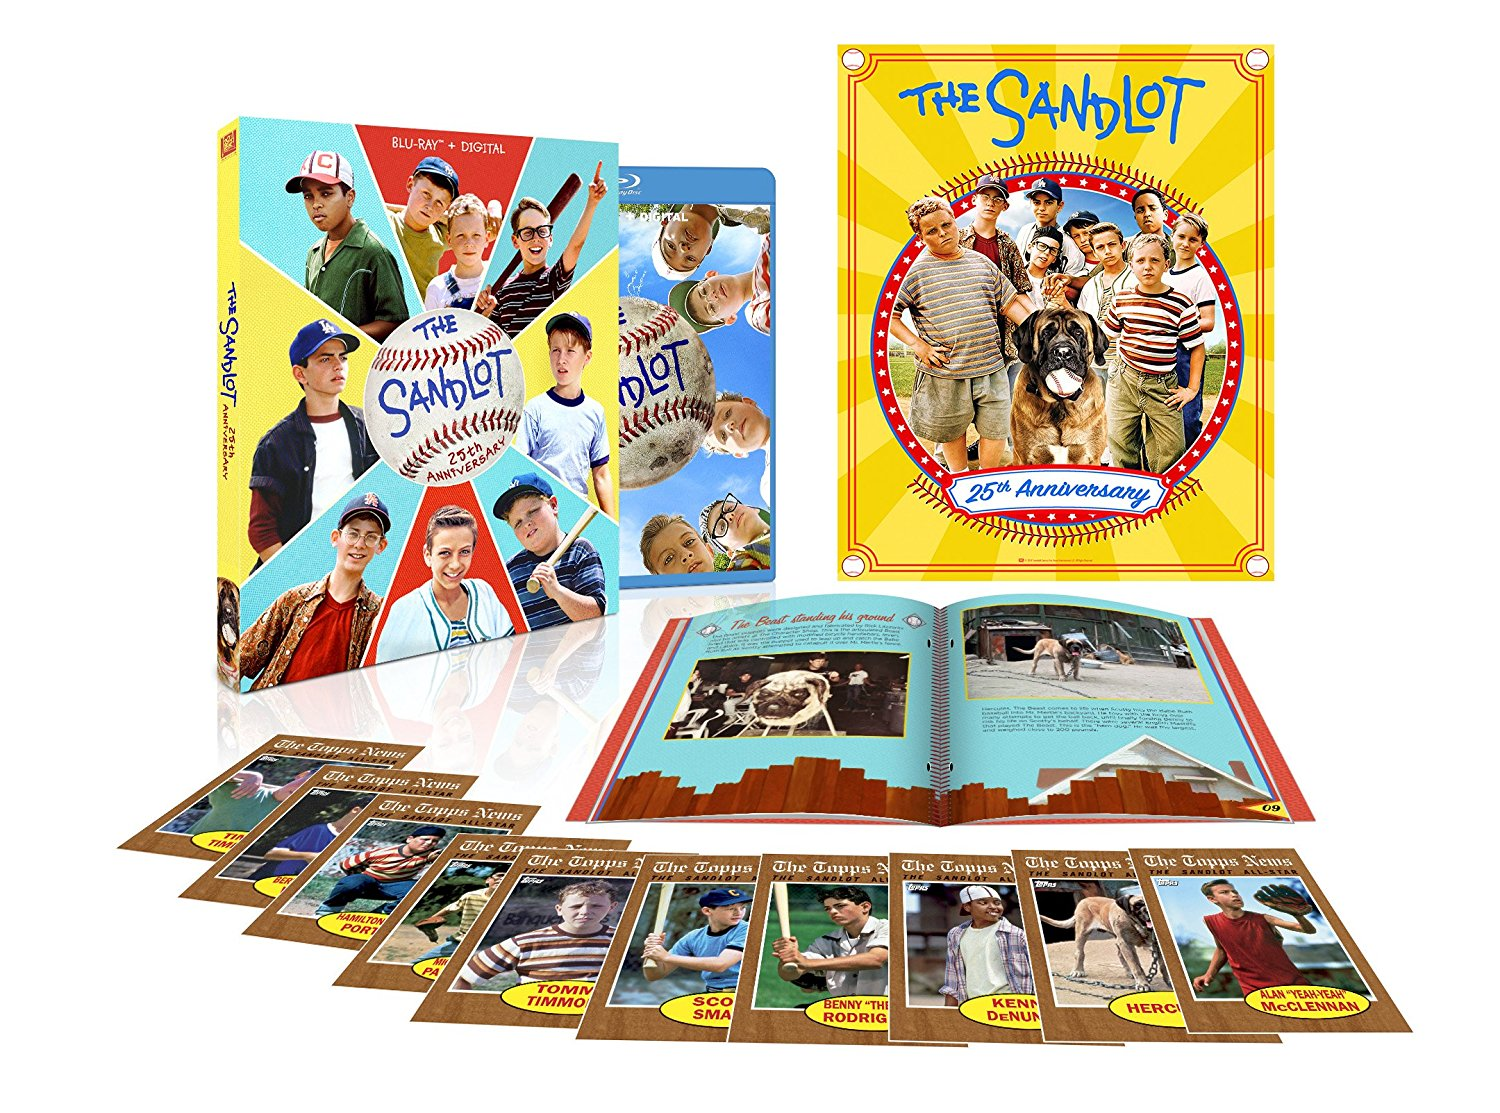 The Sandlot: 25th Anniversary Collector's Edition Blu-ray Review